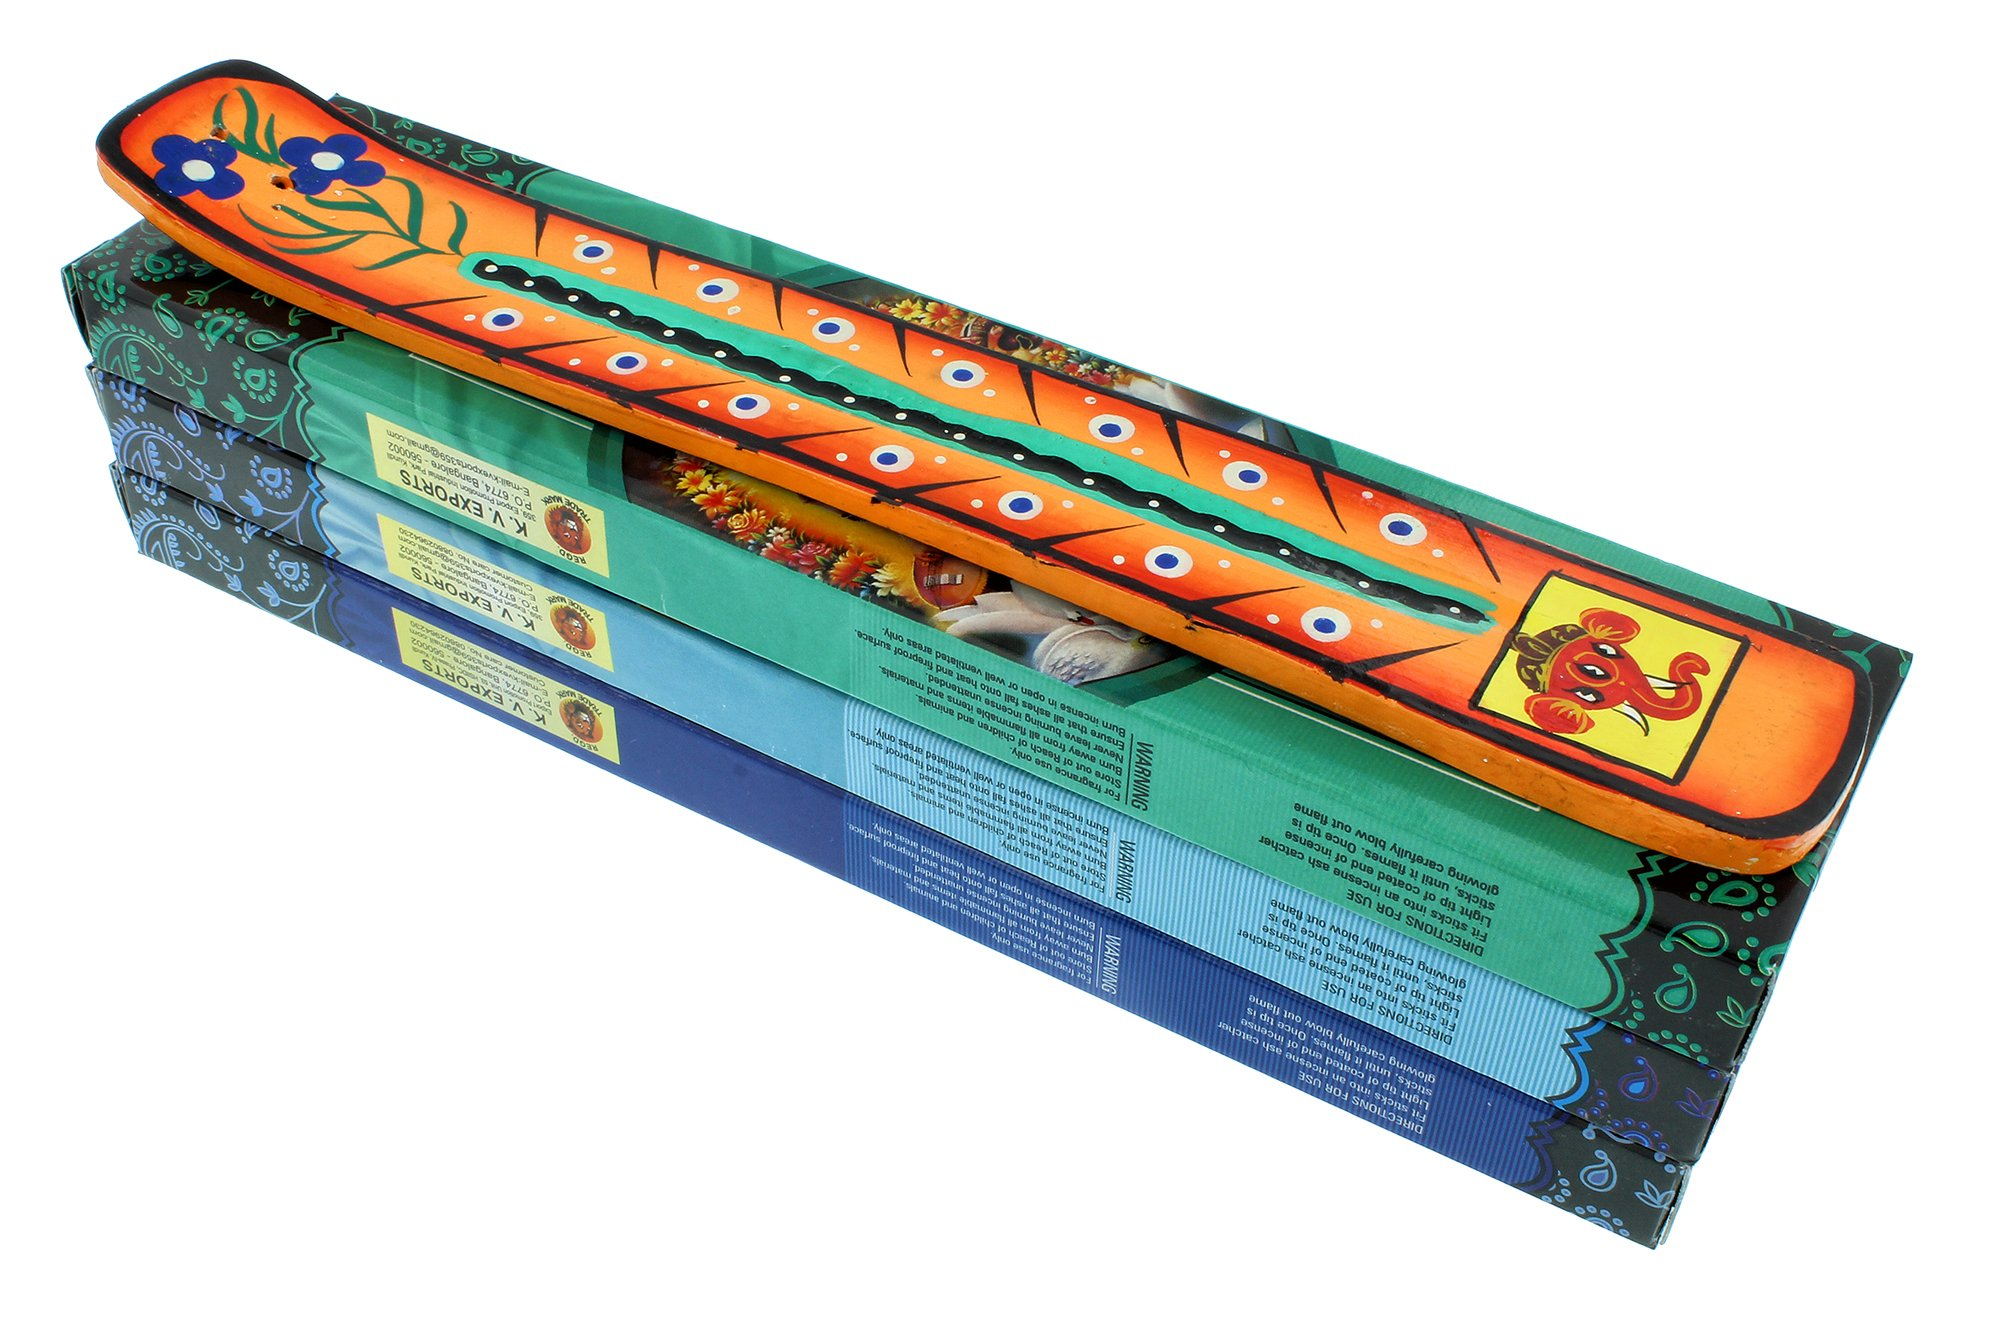 Zen Mood Incense Gift Pack - 3 Boxes of Assorted Indian God Incense and 1 Hand Painted Incense Holder with Ganesh Design - Orange